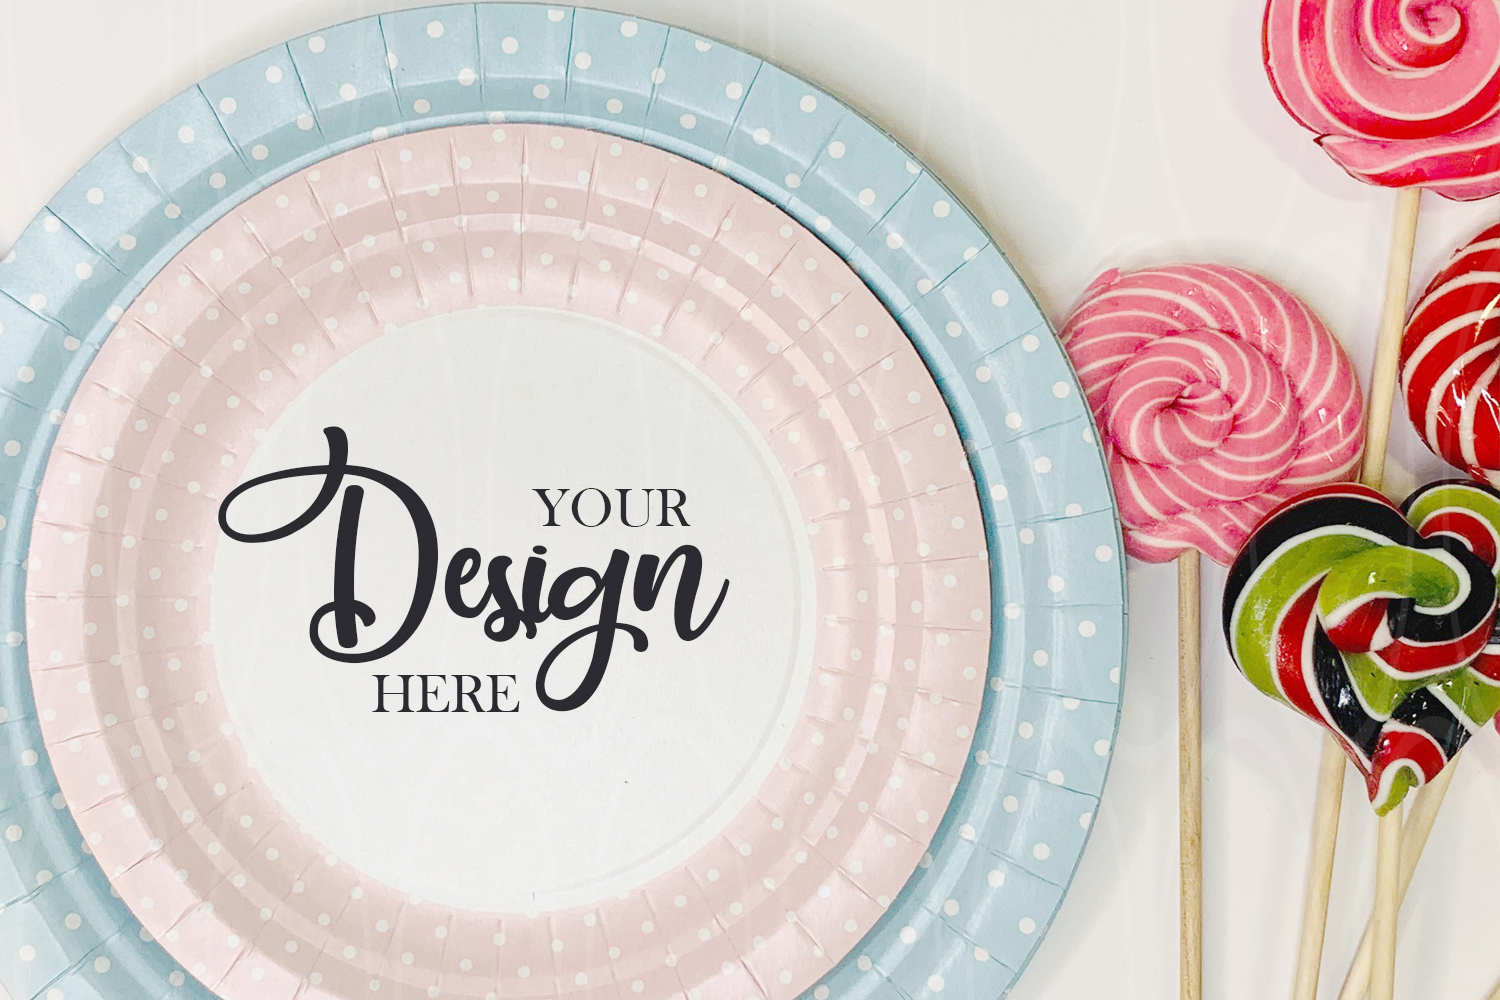 Blue and pink plates mockup Candies Styled Stock Photo example image 1